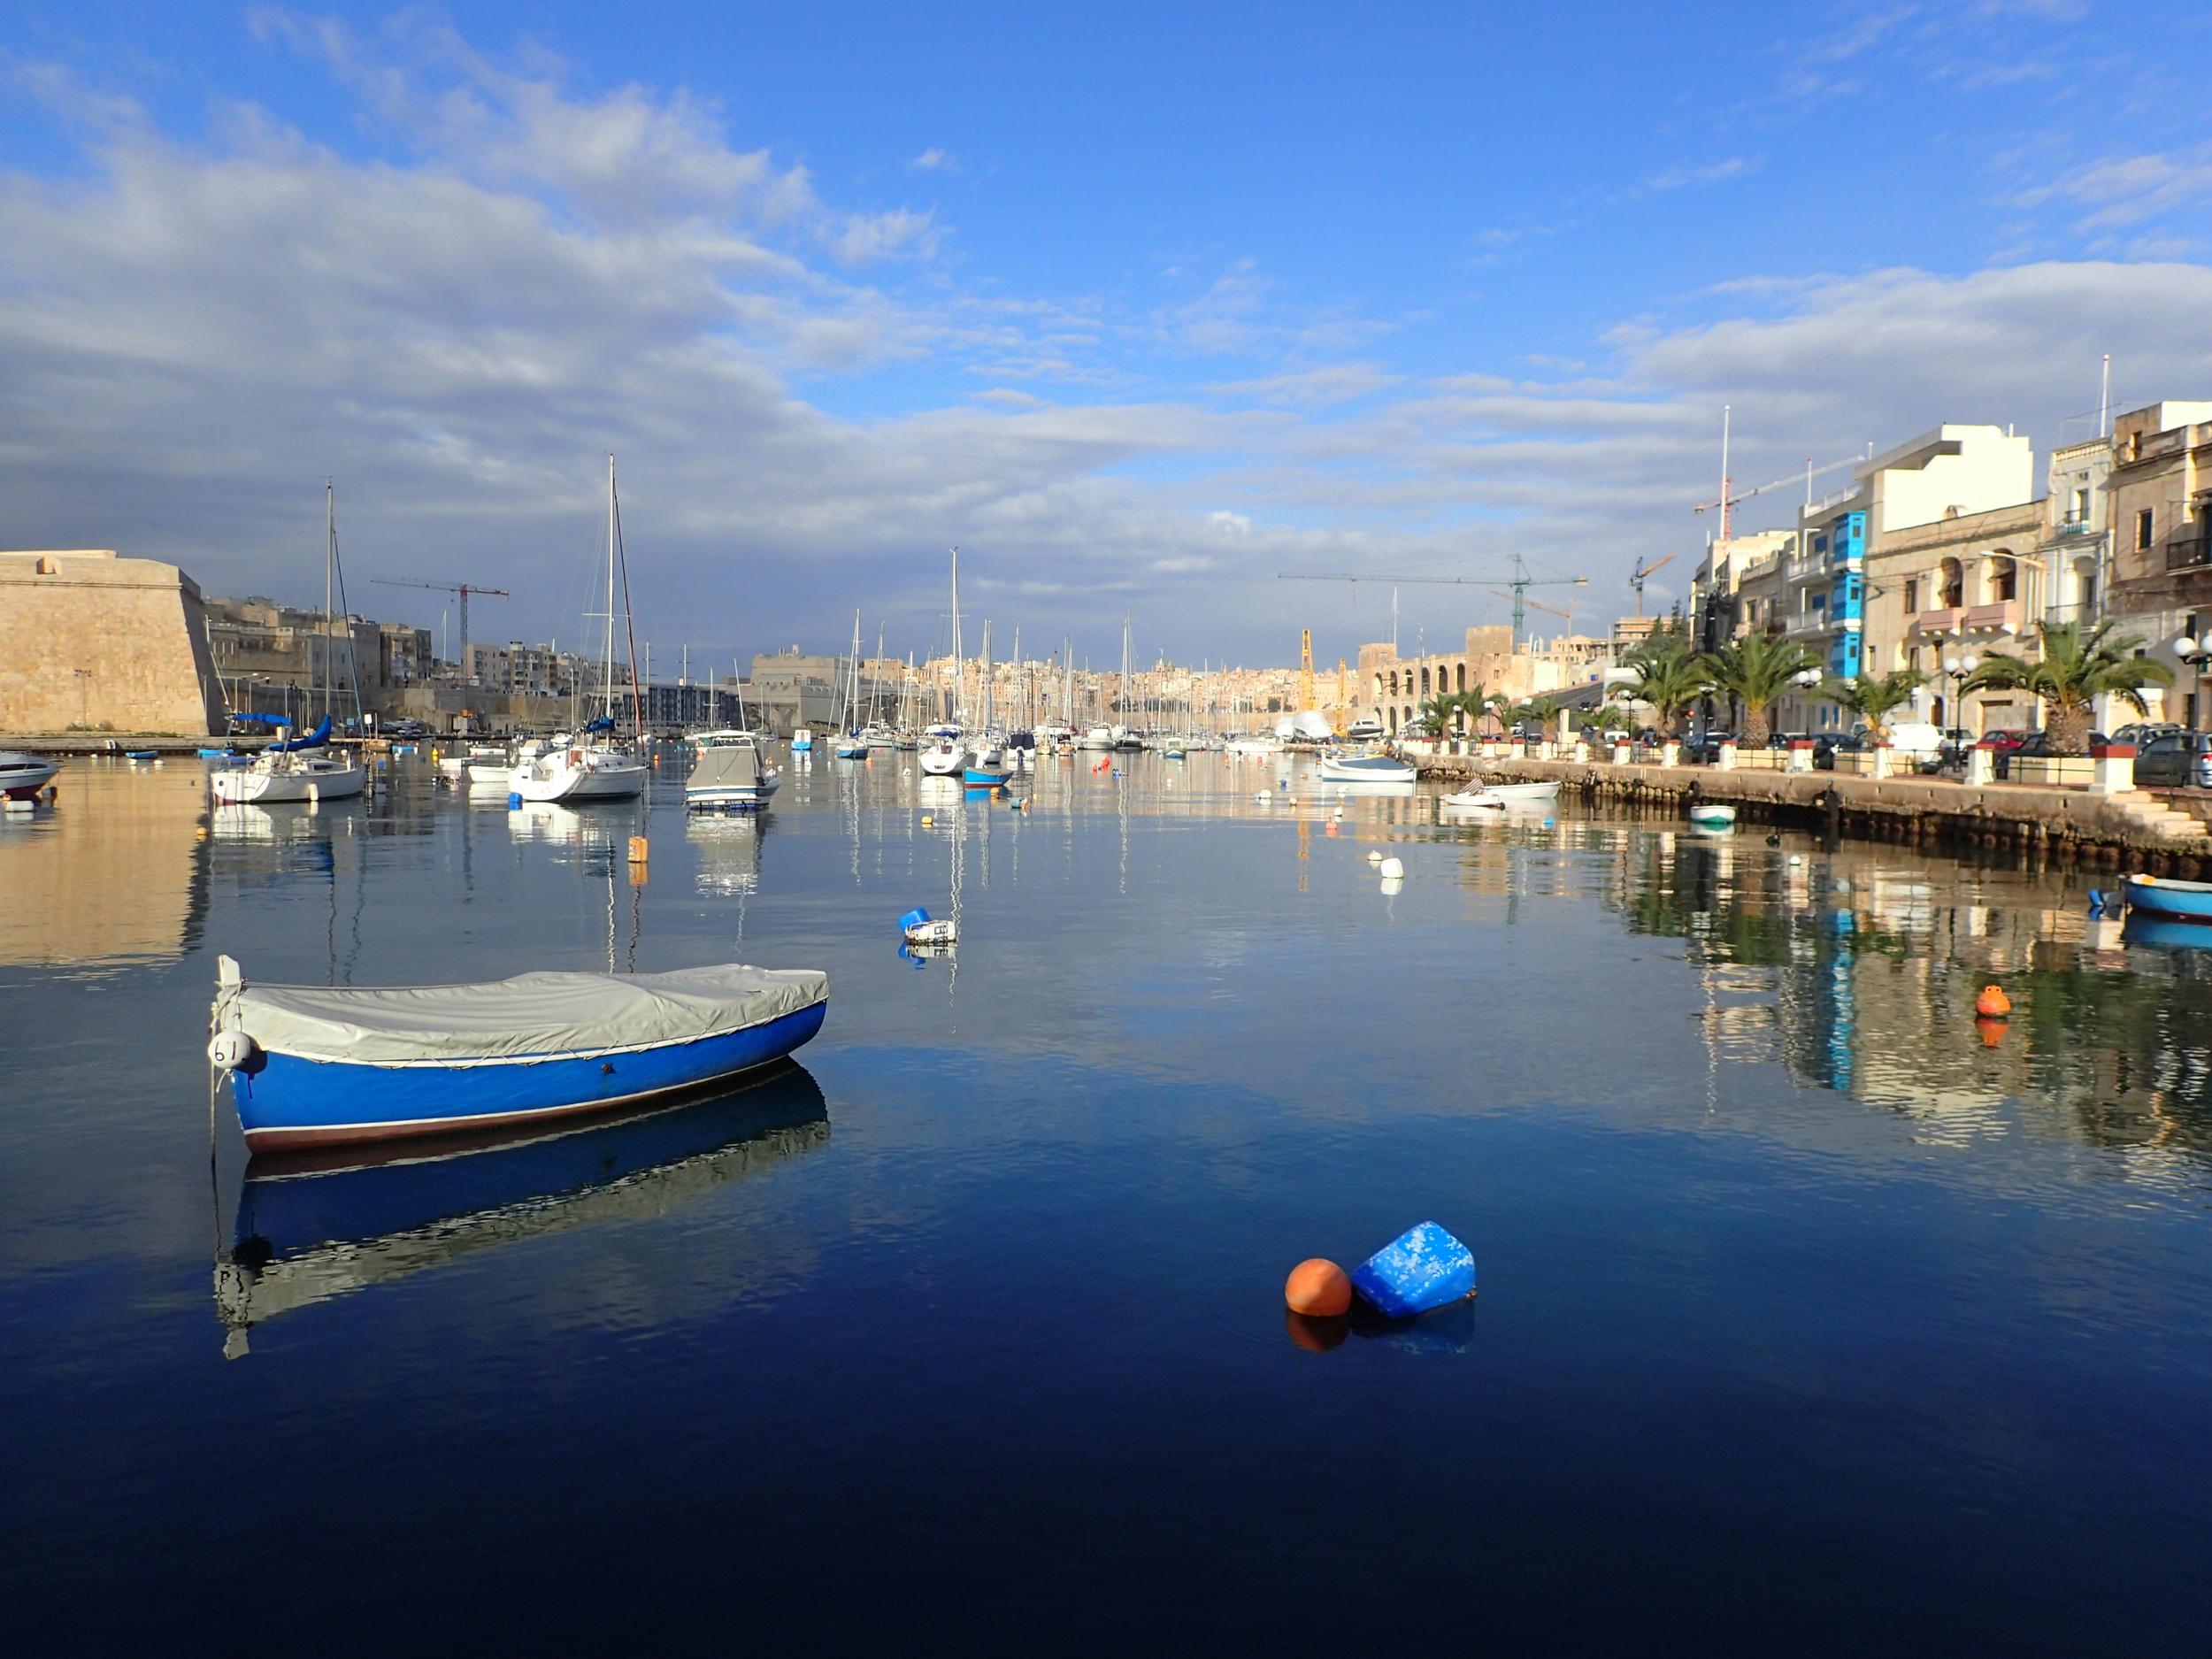 Morning view in Kalkara.